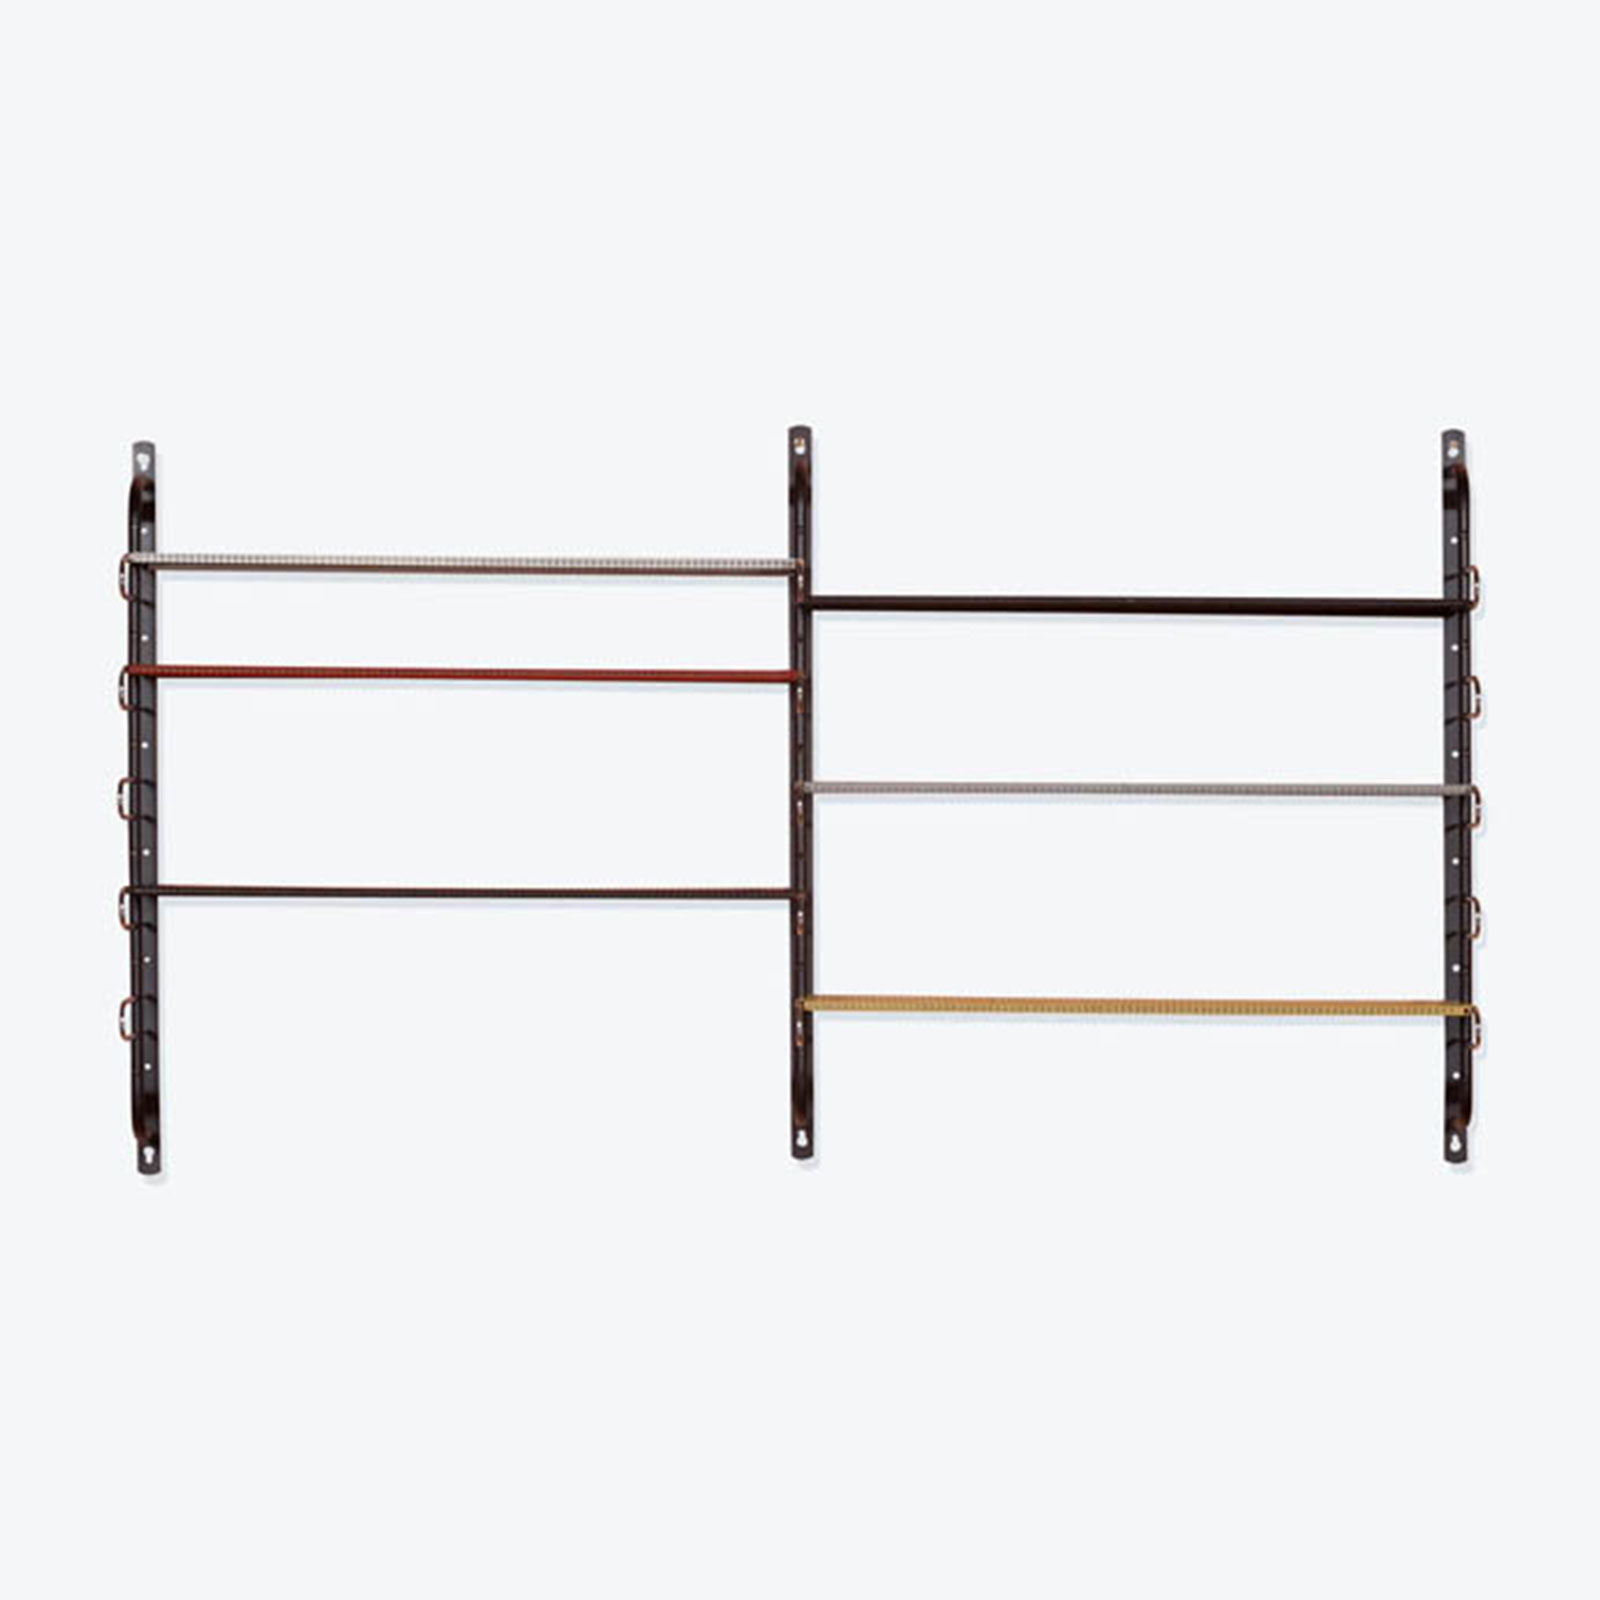 String Shelving By Mathieu Mategot In Perforated Metal And Chrome, 1960s, France Hero